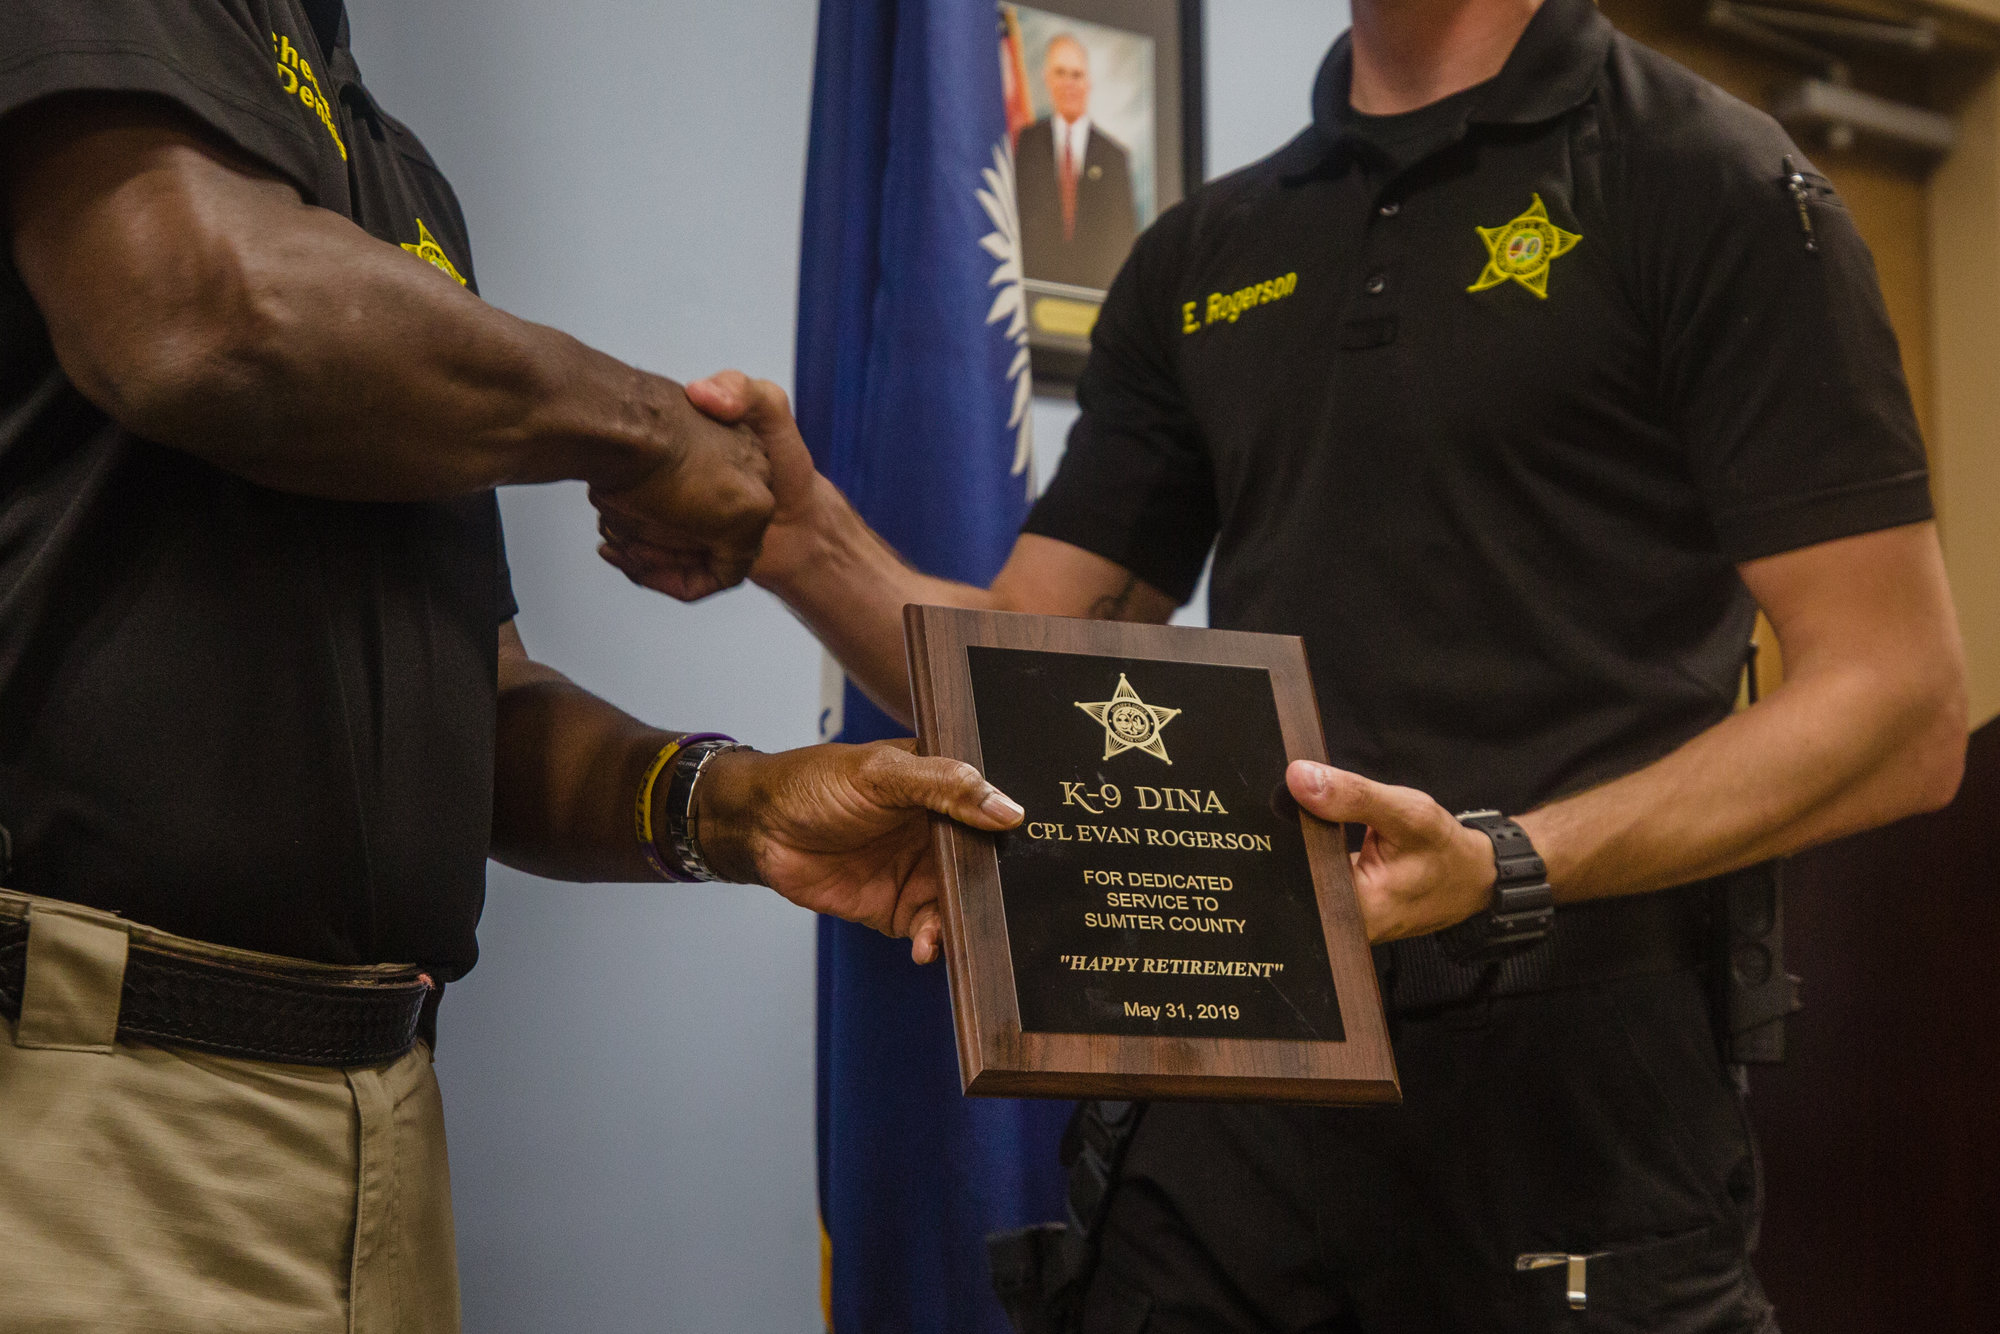 Sumter County Sheriff Anthony Dennis awards Cpl. Evan Rogerson a plaque congratulating K-9 Dina on her retirement.